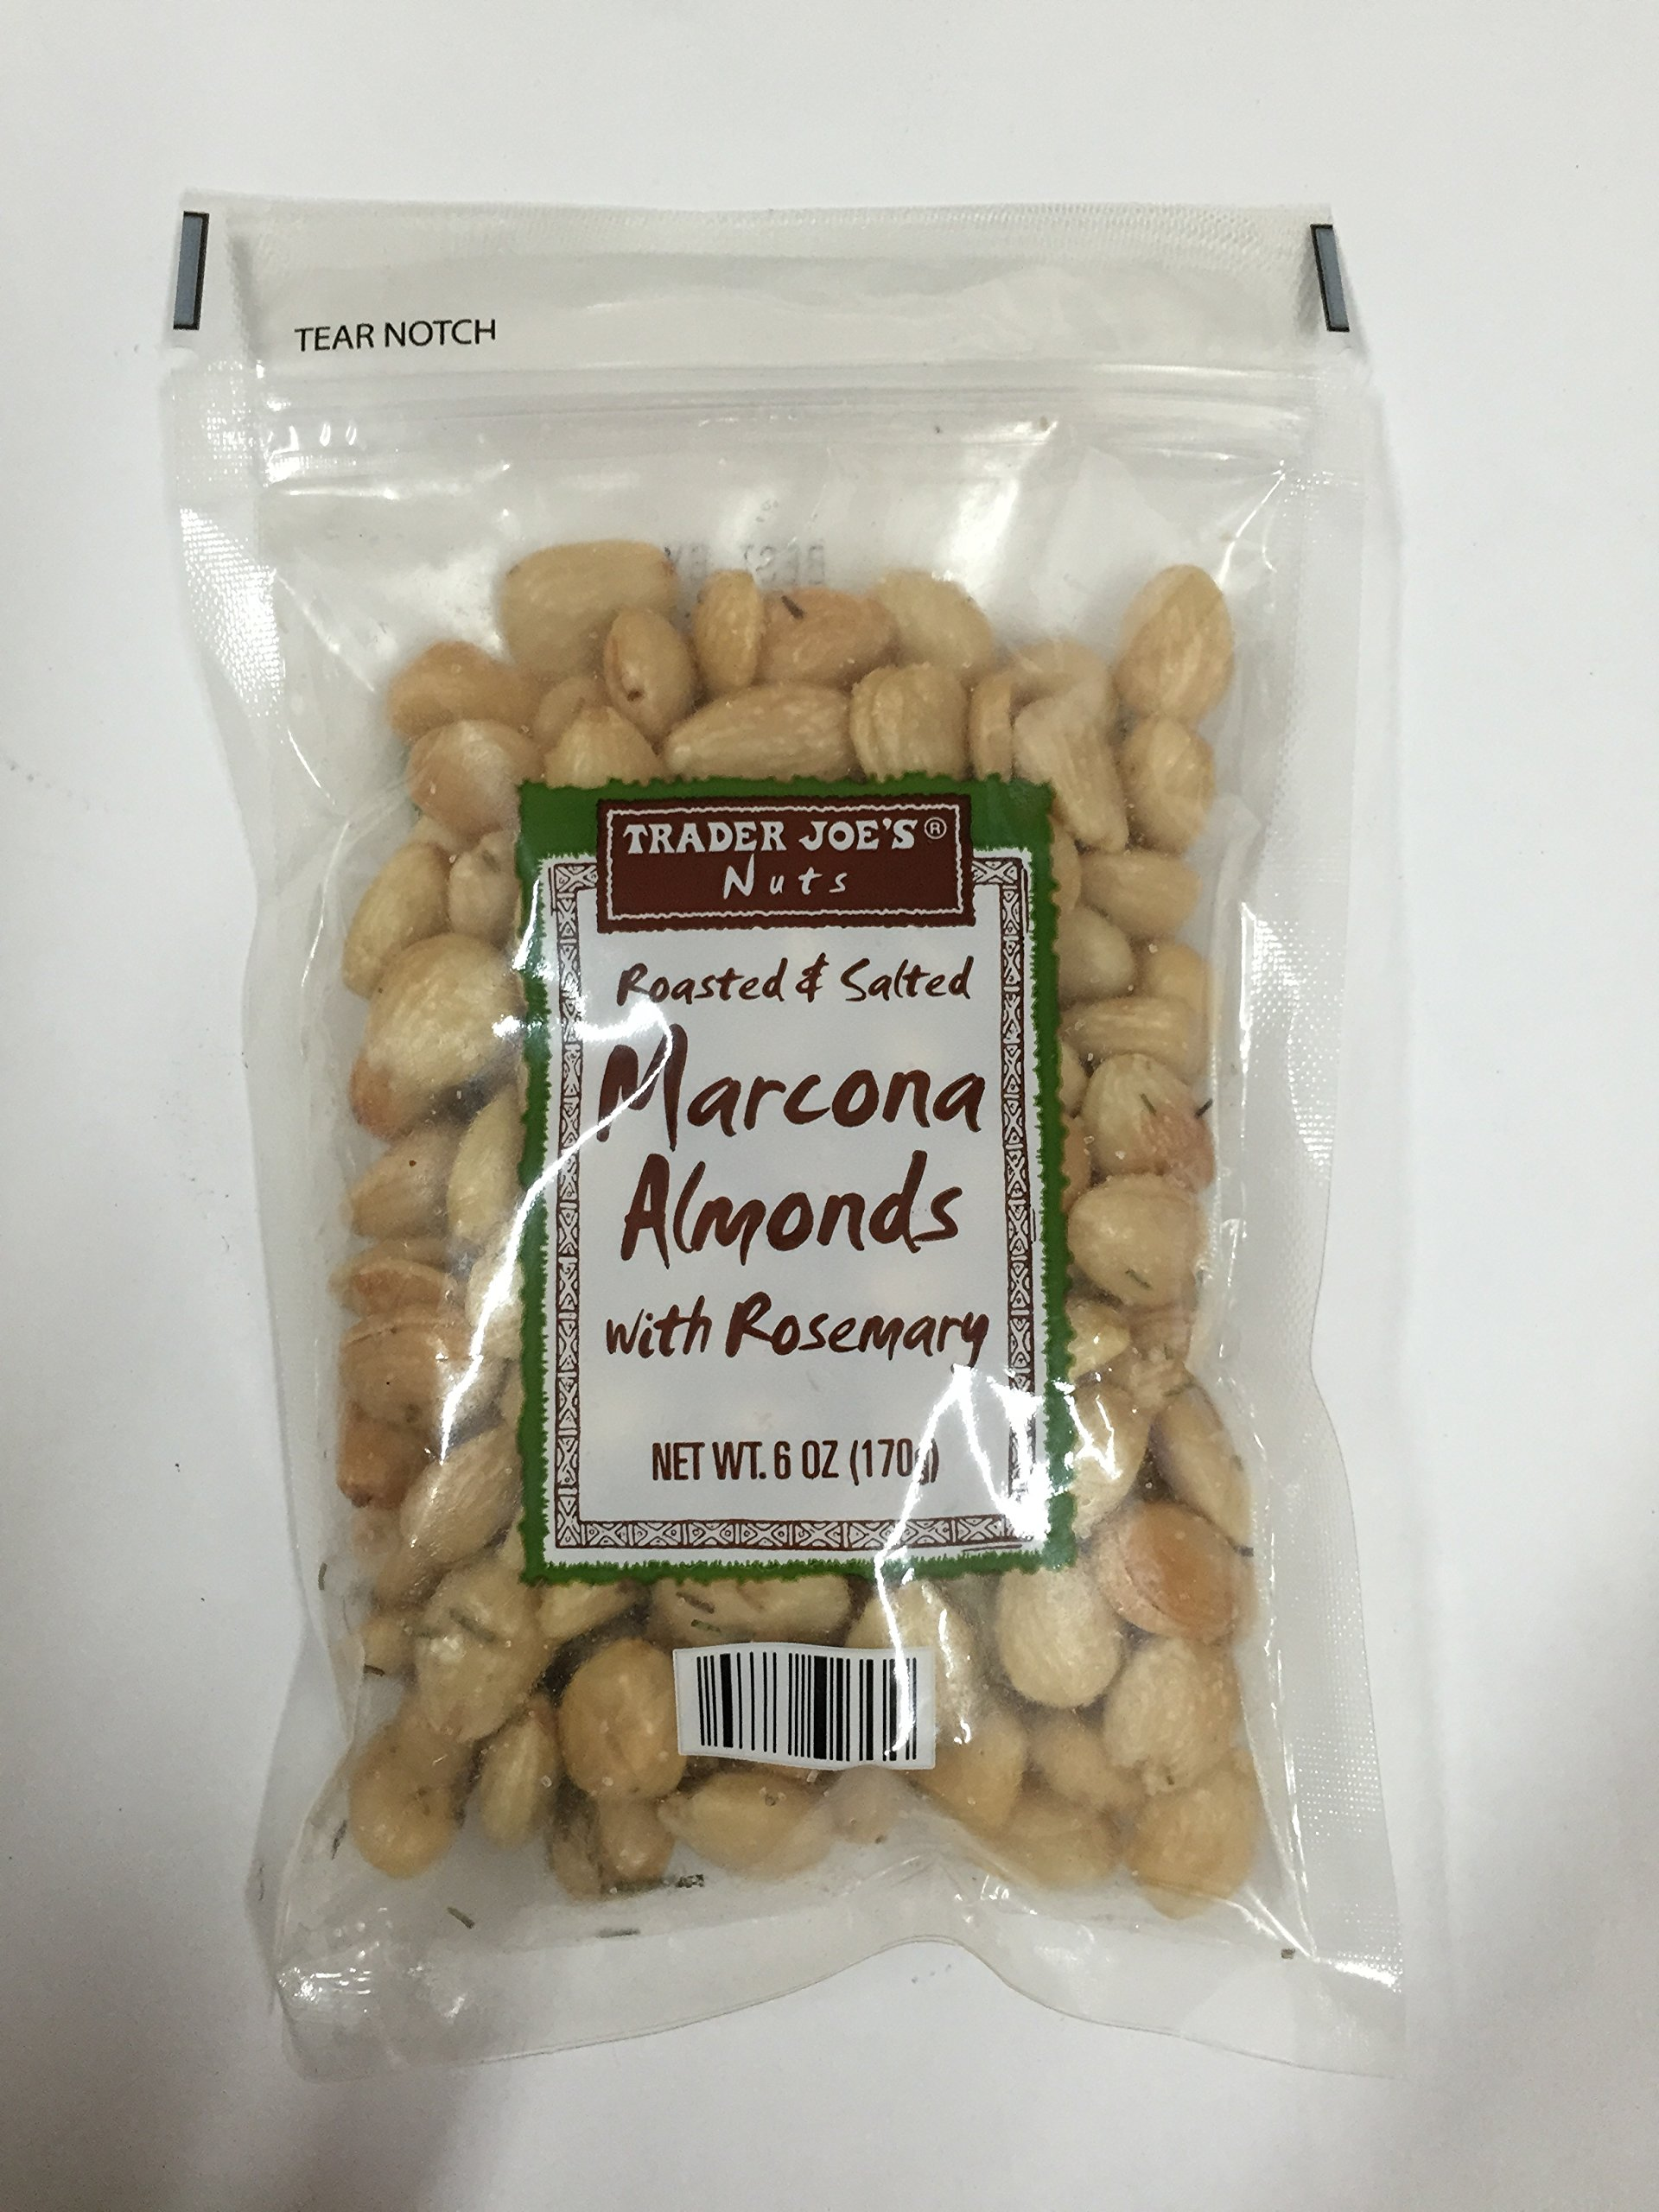 Trader Joe's Roasted & Salted Marcona Almonds with Rosemary - Pack of 12